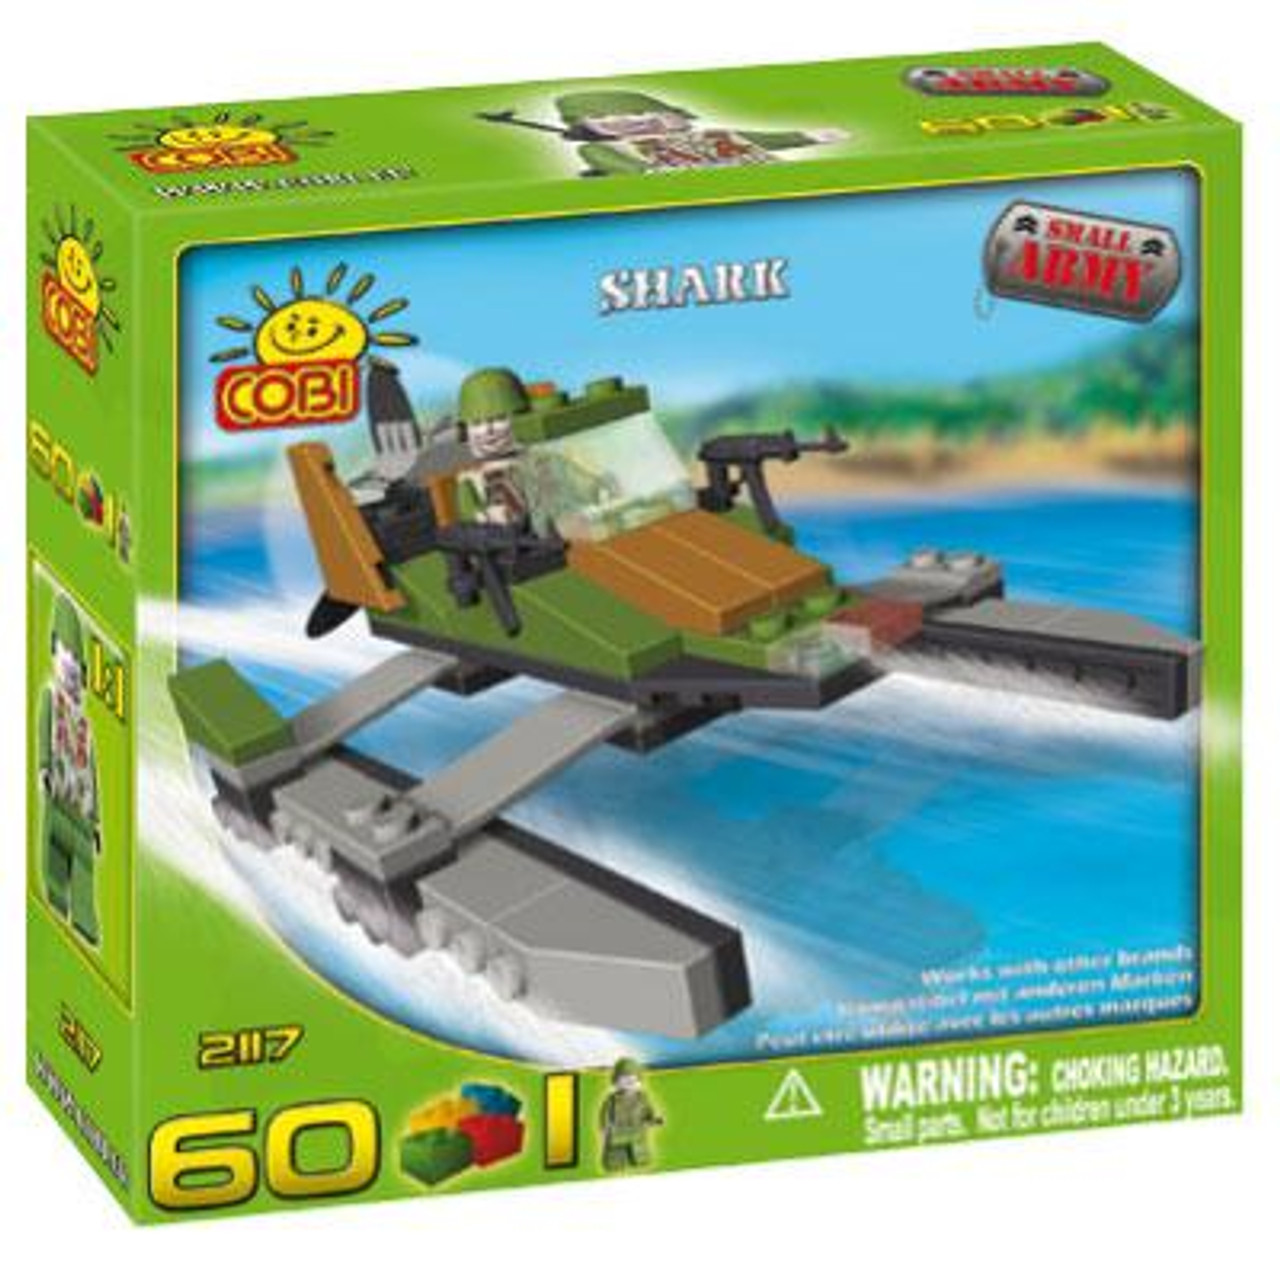 COBI Blocks Small Army Shark Set #2117